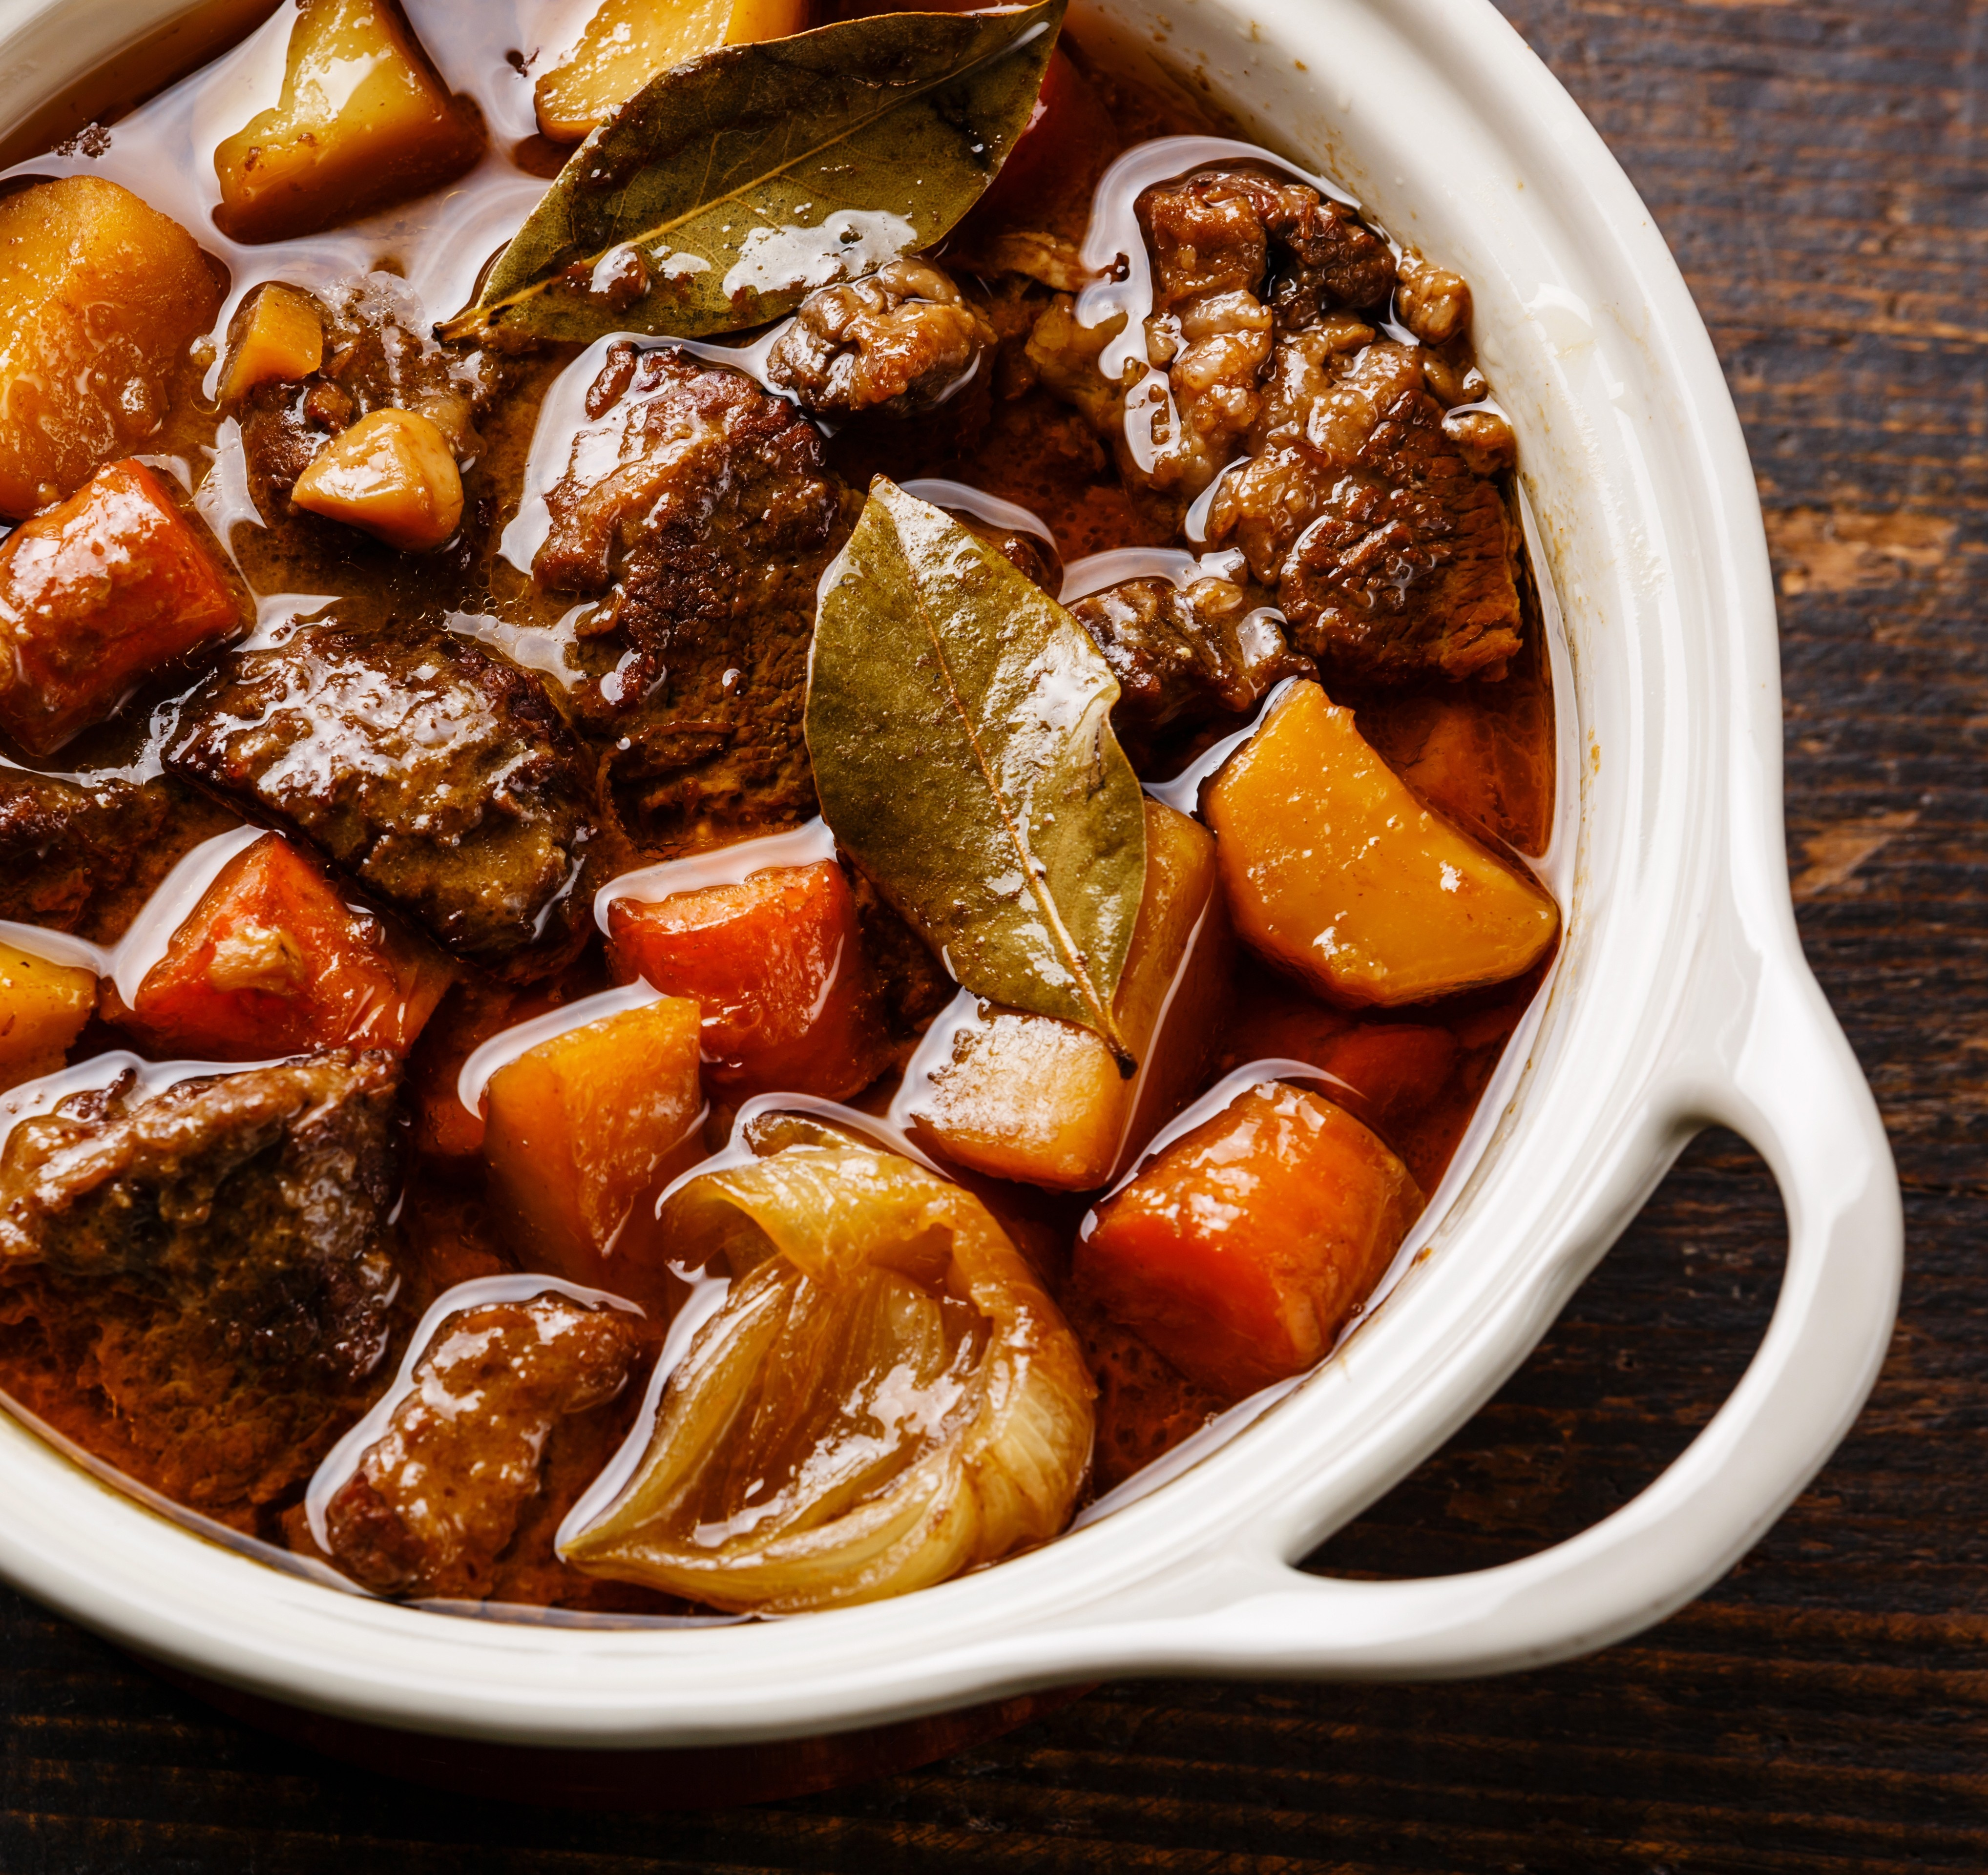 The Hungry Housewife's Eats Smokey Beef Casserole